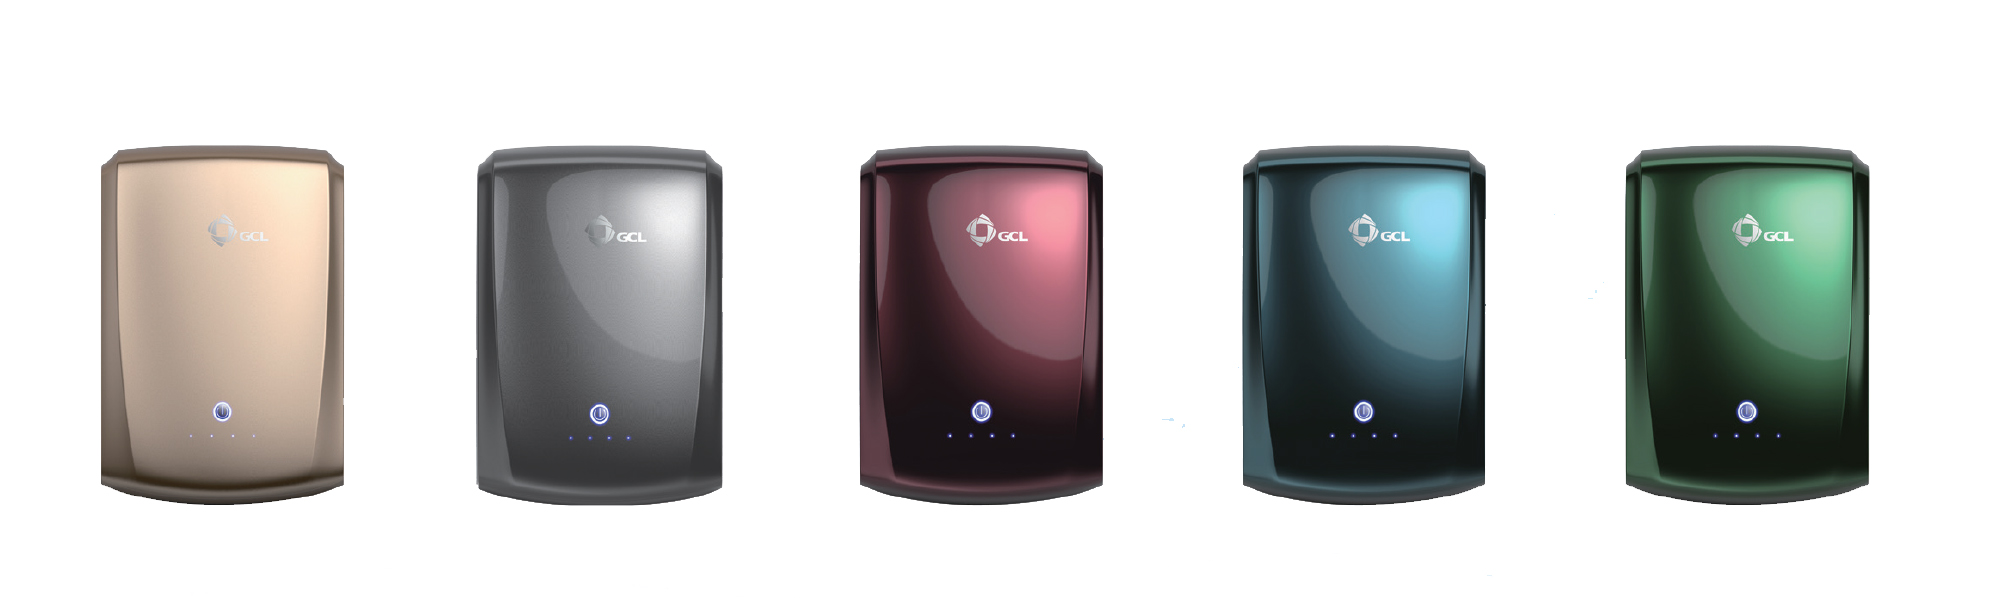 GCL's E-KwBe currently comes in multiple colors of 2.5 kWh and 5.6 kWh models.